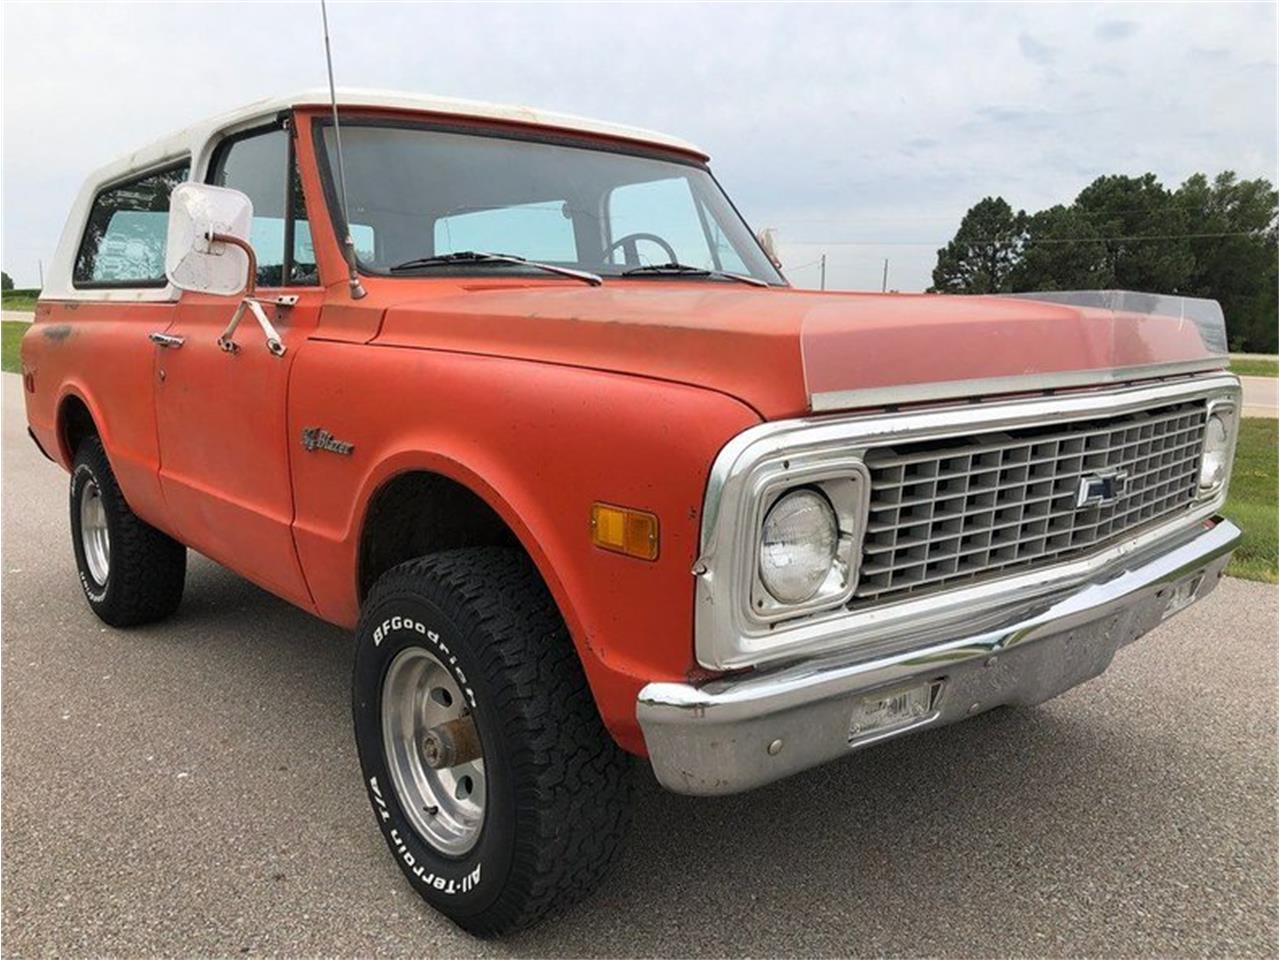 1972 Chevrolet Blazer for sale in Lincoln, NE – photo 2